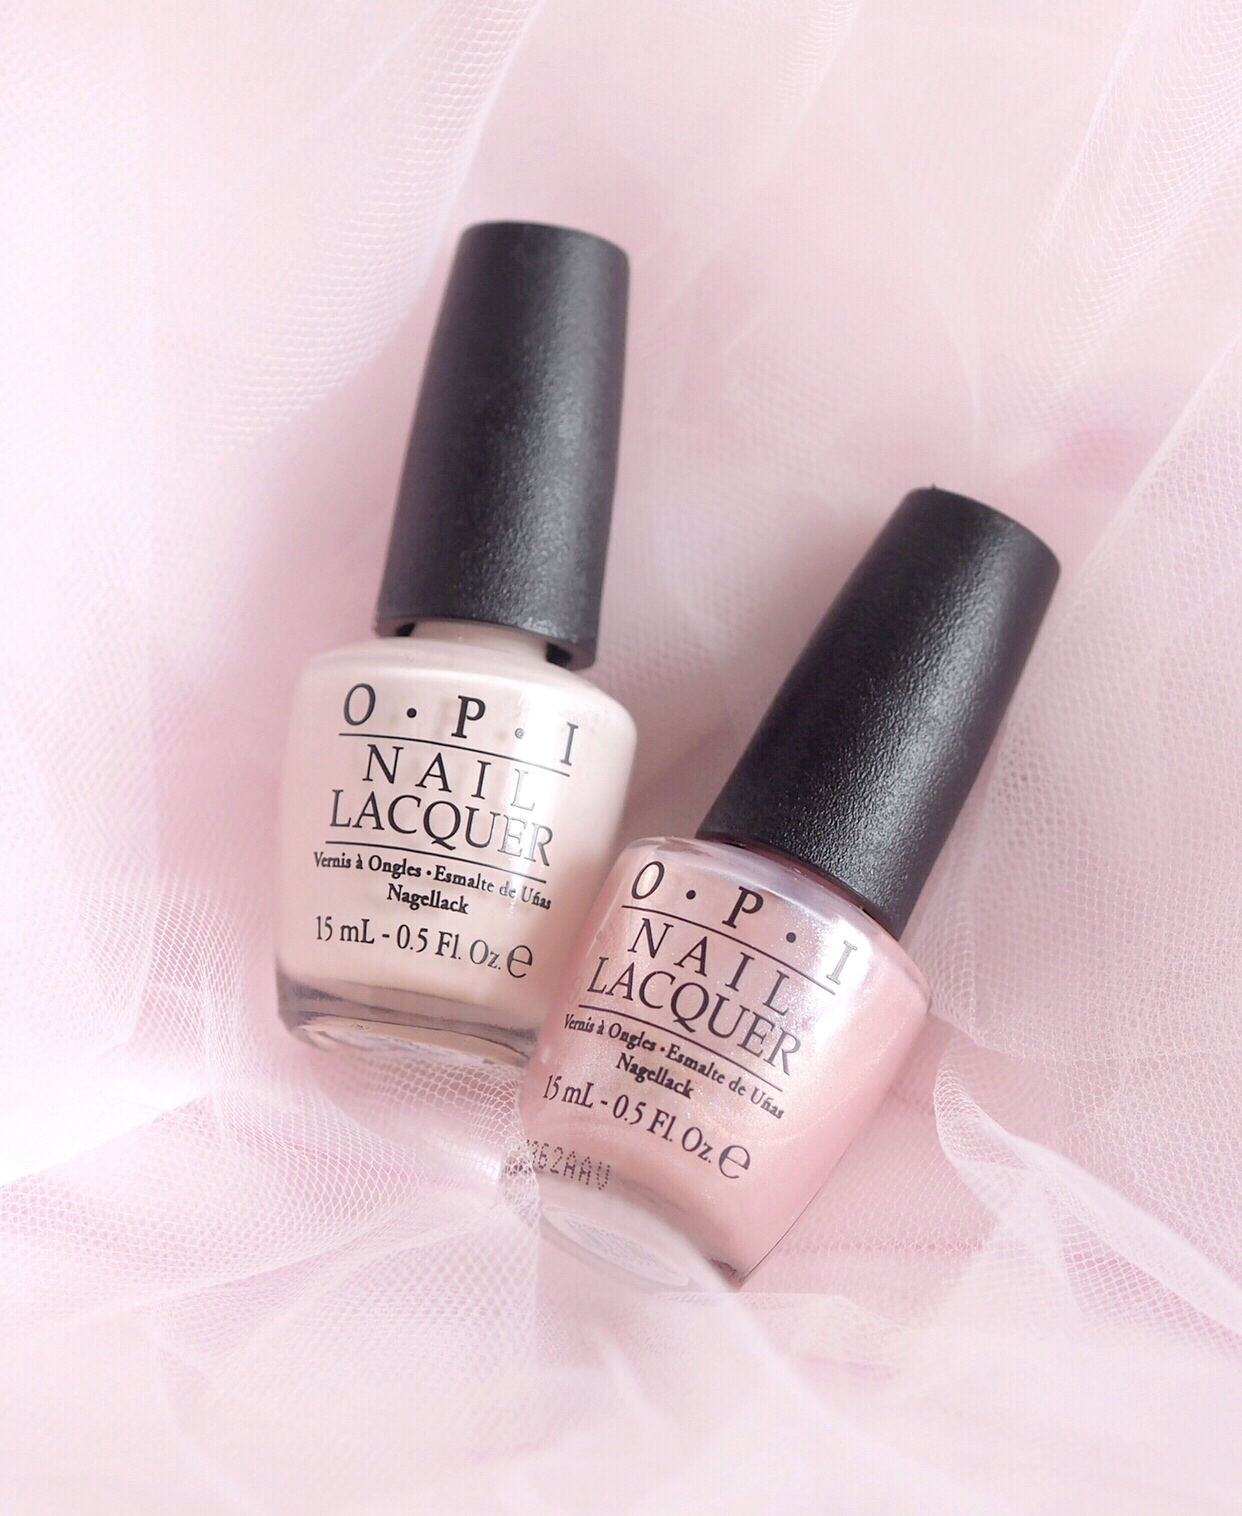 12 Cute Ways To Fall In Love With February, OPI Pink Nail Polish | Love Catherine